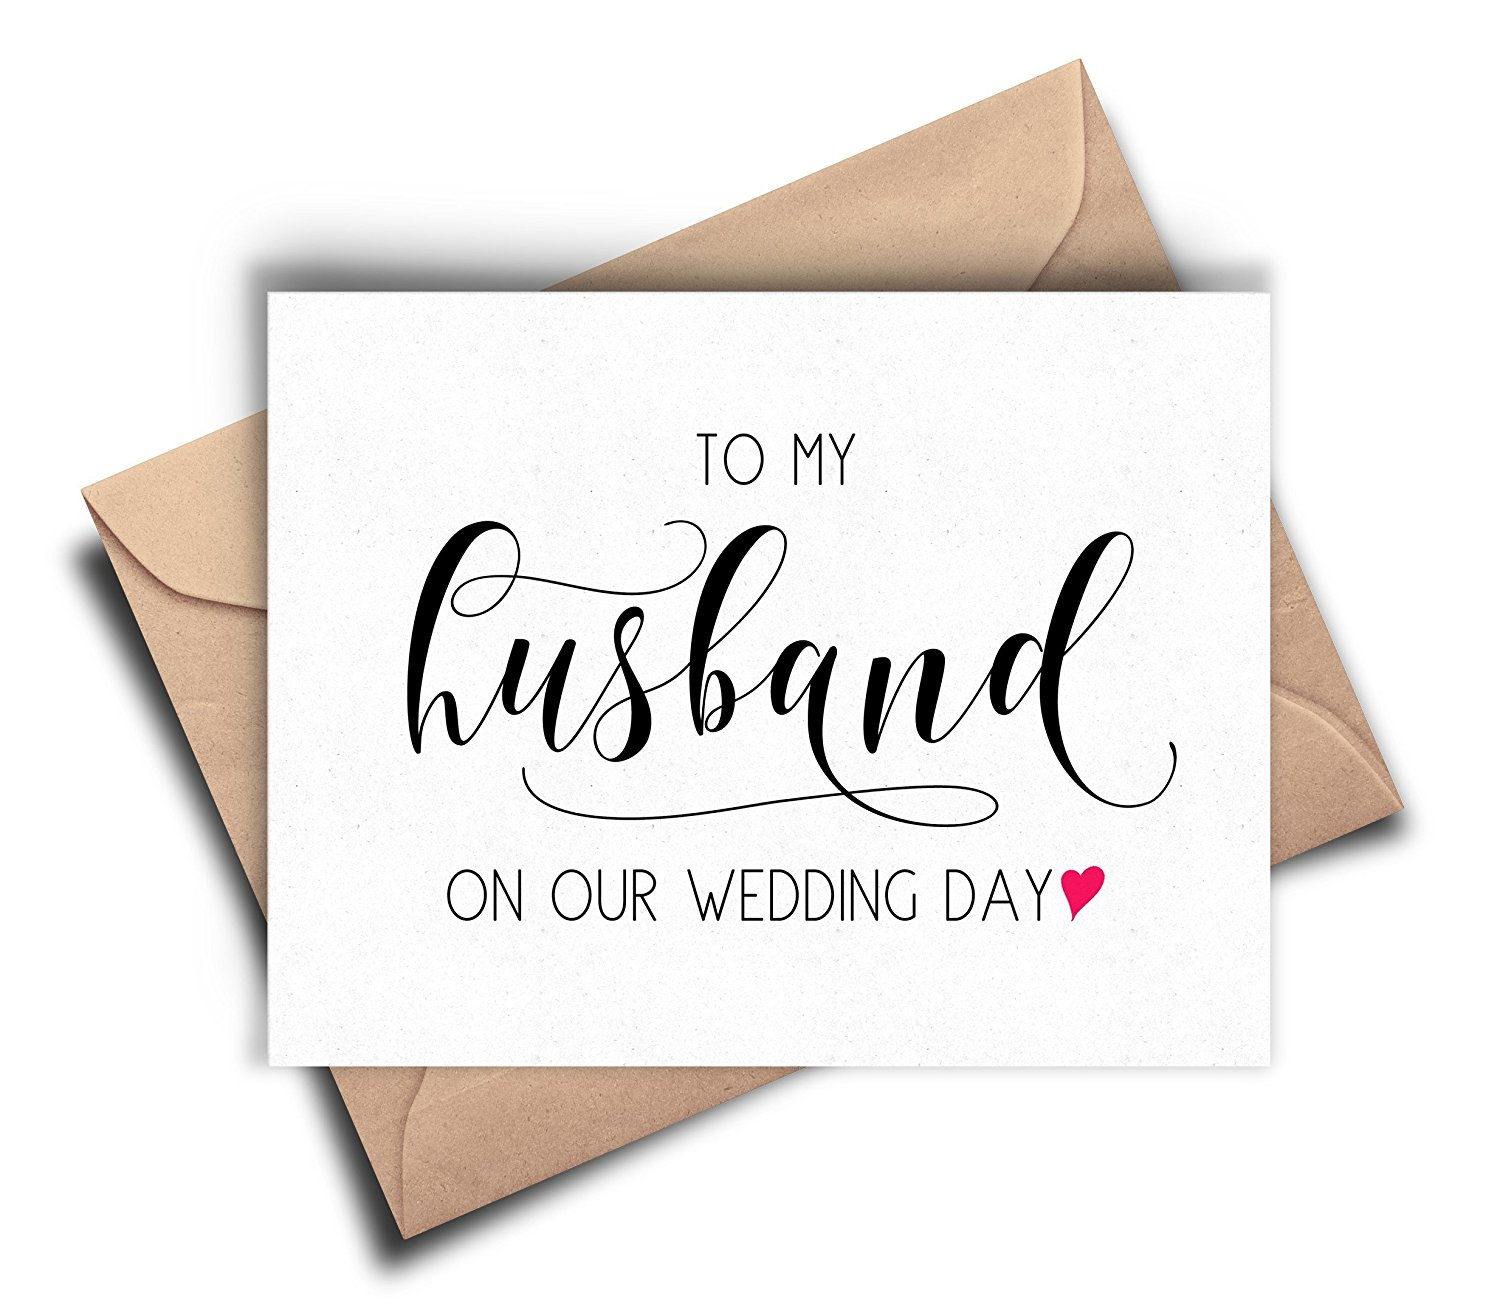 Wedding Day Groom Gift: Buy Groom Card From Bride, To My Husband On Our Wedding